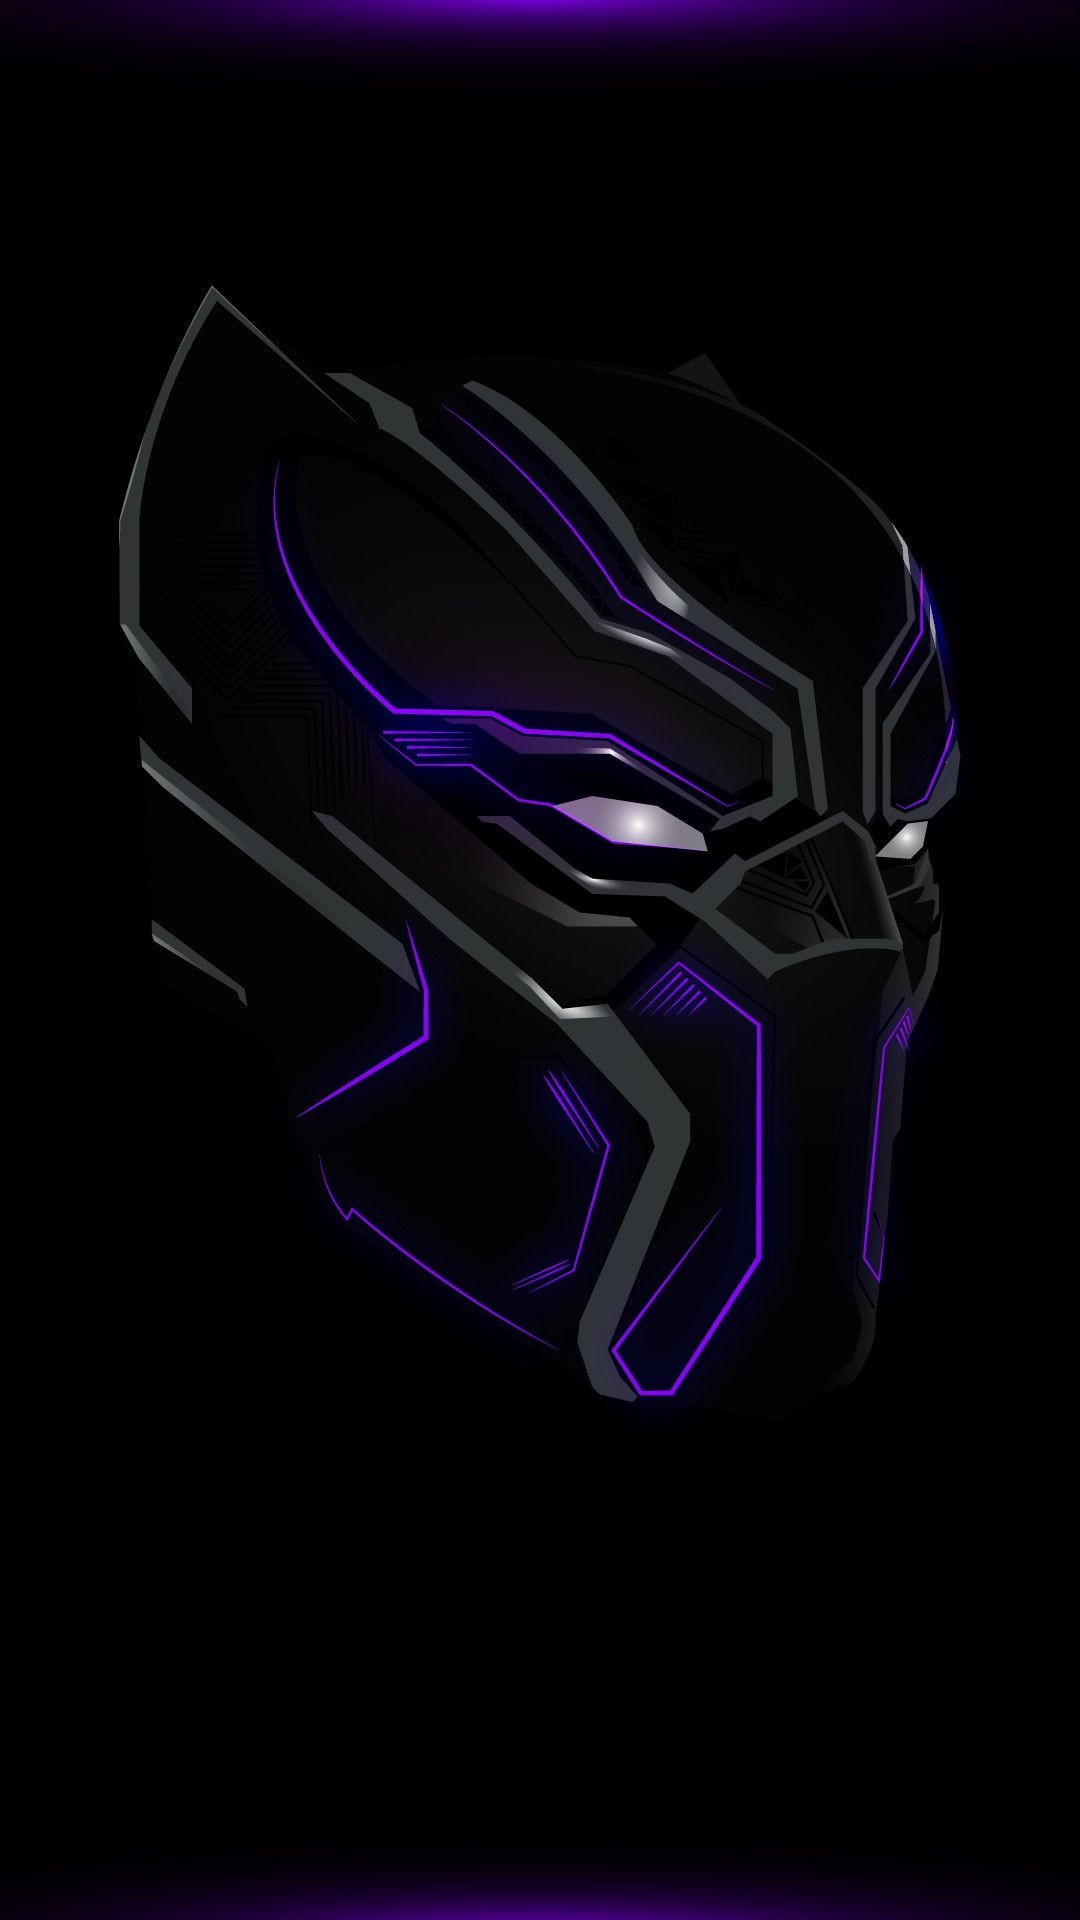 Pin By Bugis Shop On Iphone Wallpaper In 2020 Black Panther Art Black Panther Marvel Panther Art